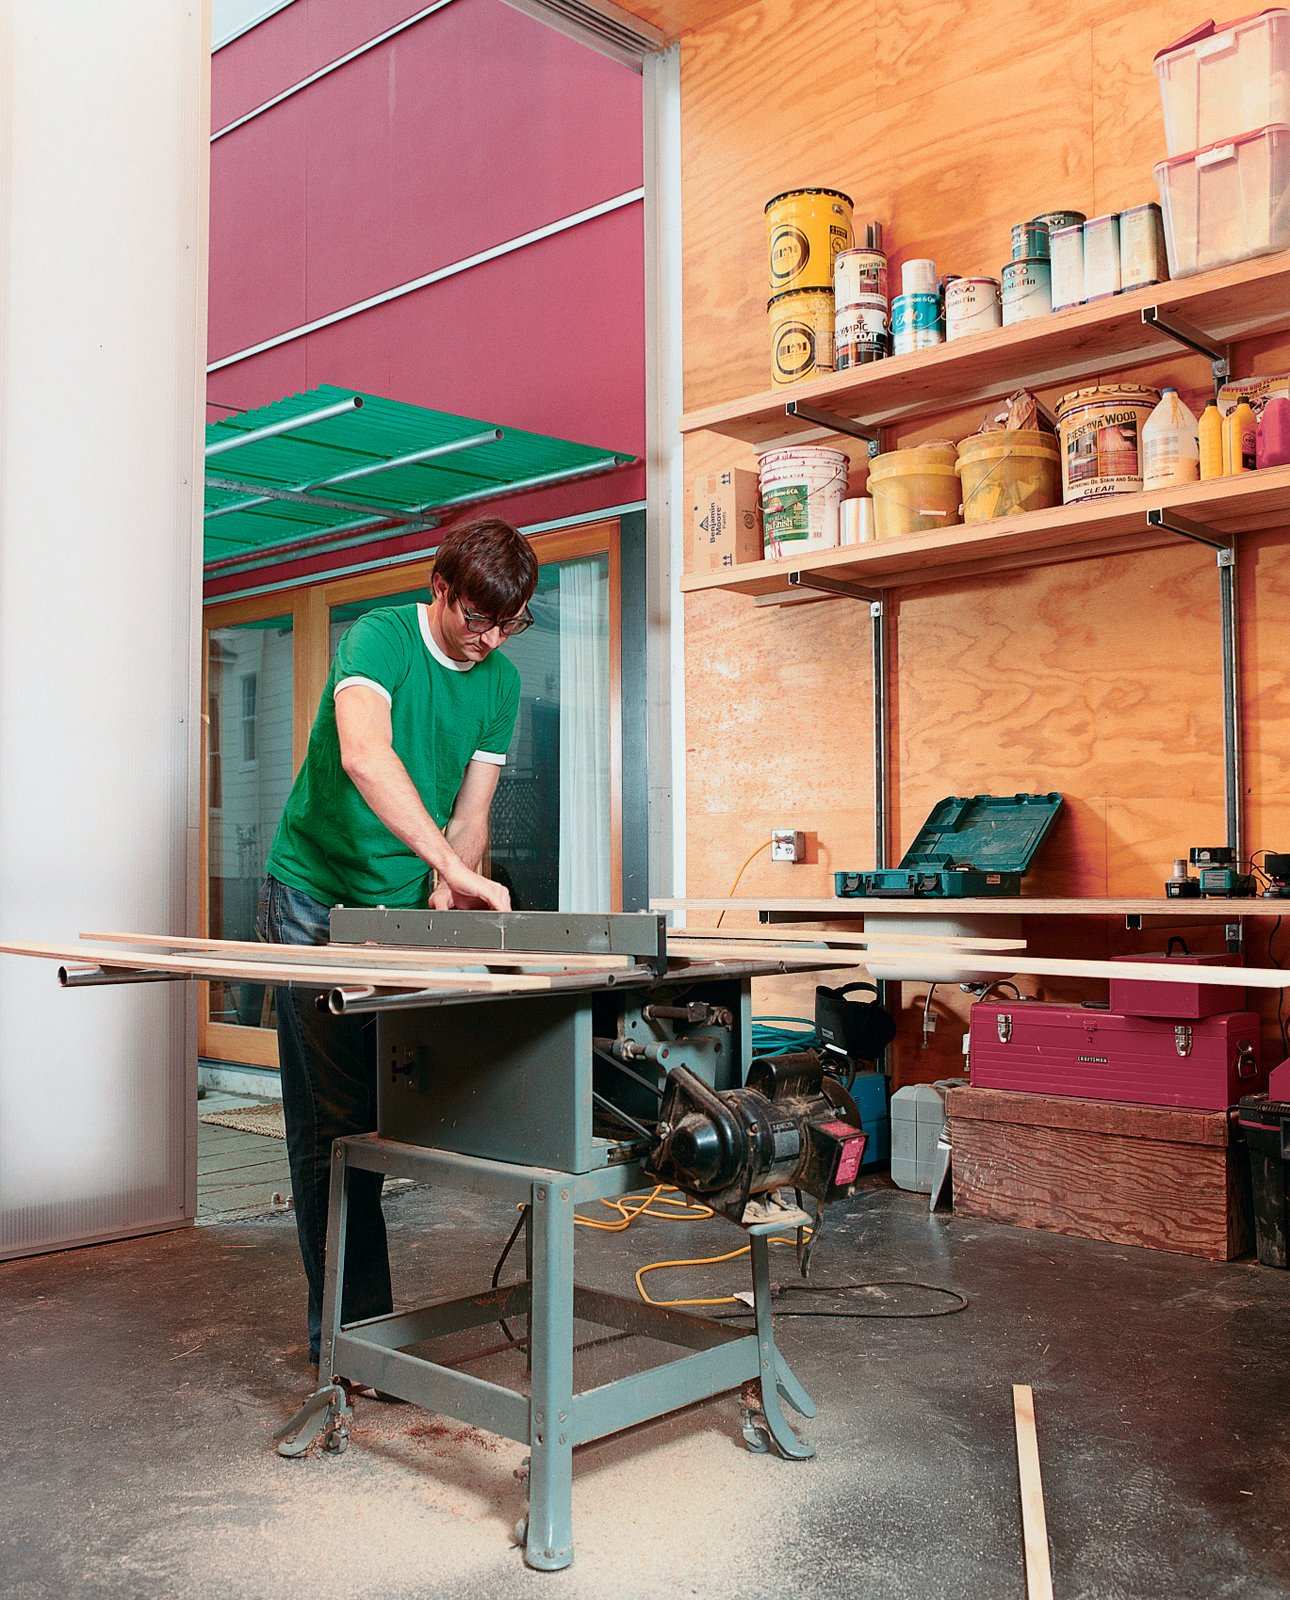 Sarti recently completed the studio addition to his house, giving him another 300 square feet of space. Now, all future home-improvement projects can be completed entirely onsite, though late-night table-saw usage might leave his neighbors sleepless in Seattle. Halving It All - Photo 3 of 8